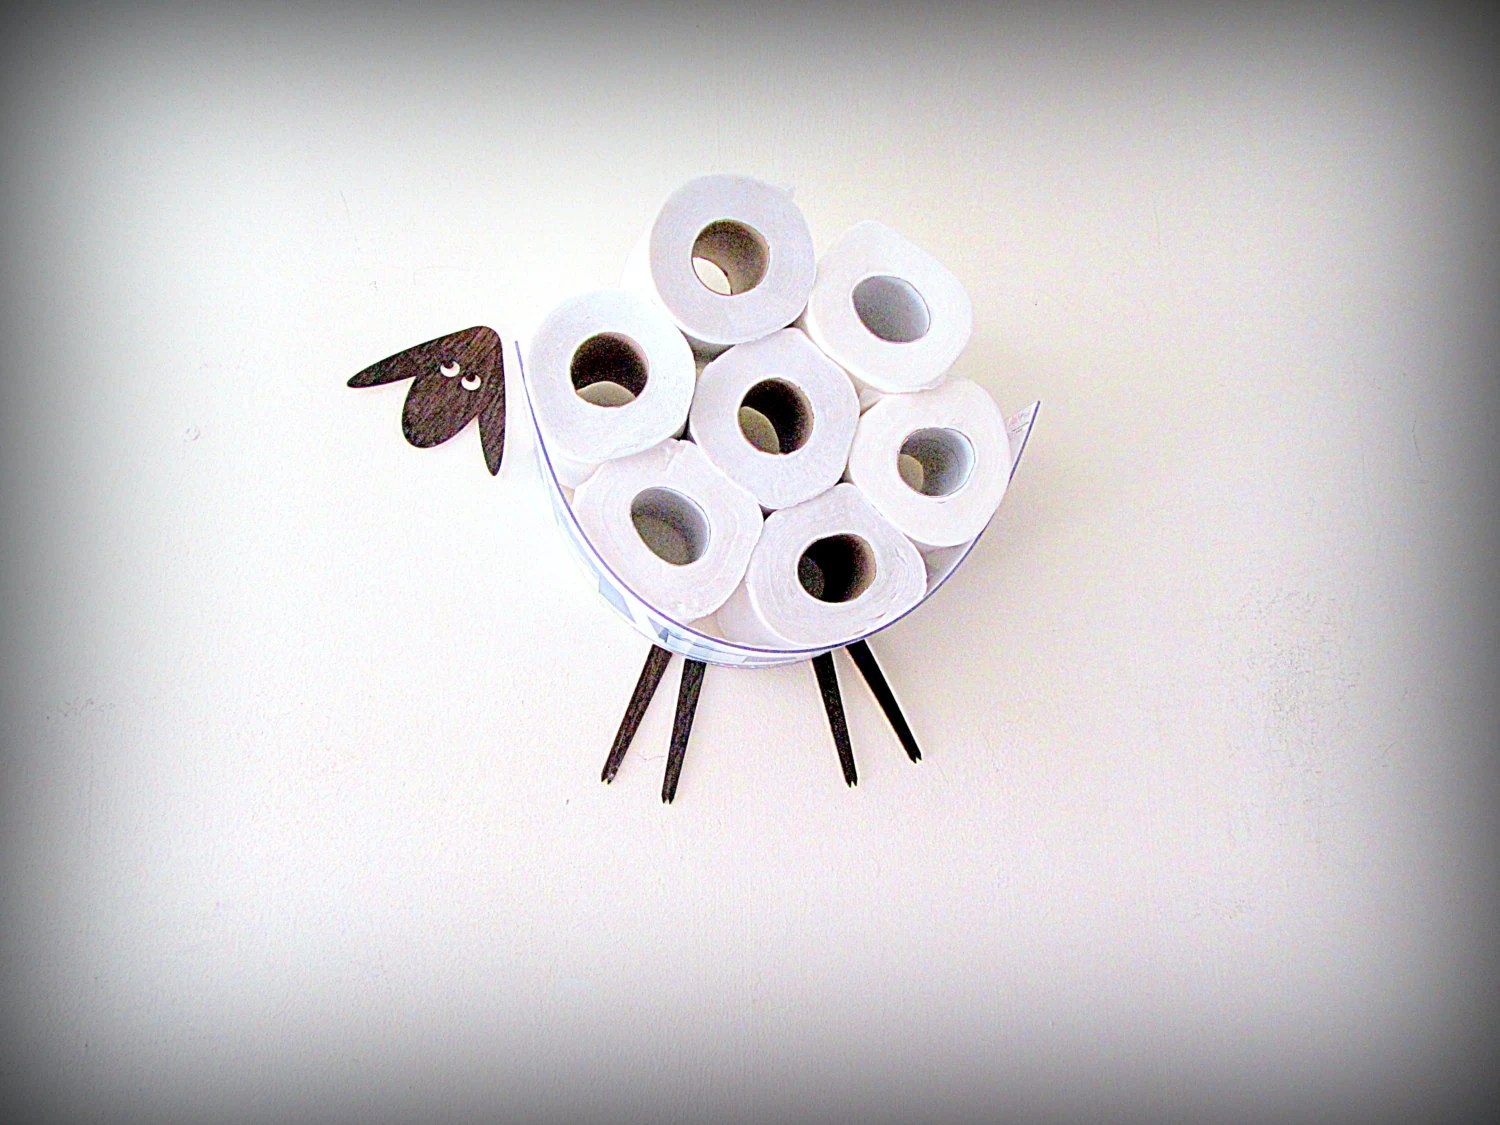 Klopapier Aufbewahrung Sheep Shelf A Wall Shelf For Storing Toilet Paper Rolls